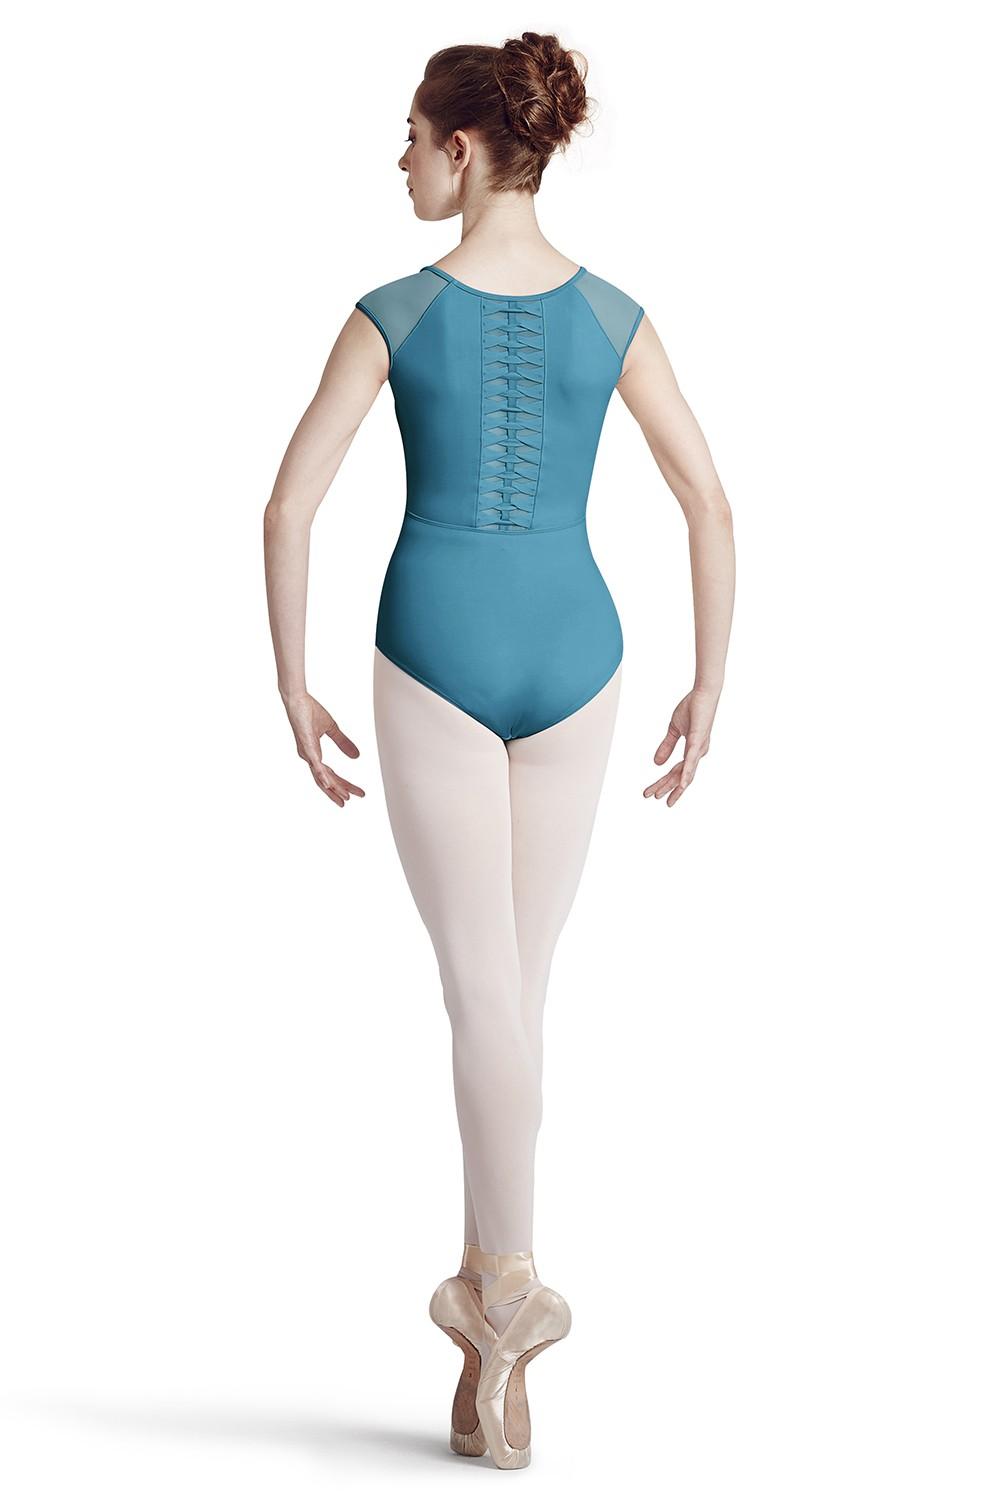 Vincenza Women's Dance Leotards